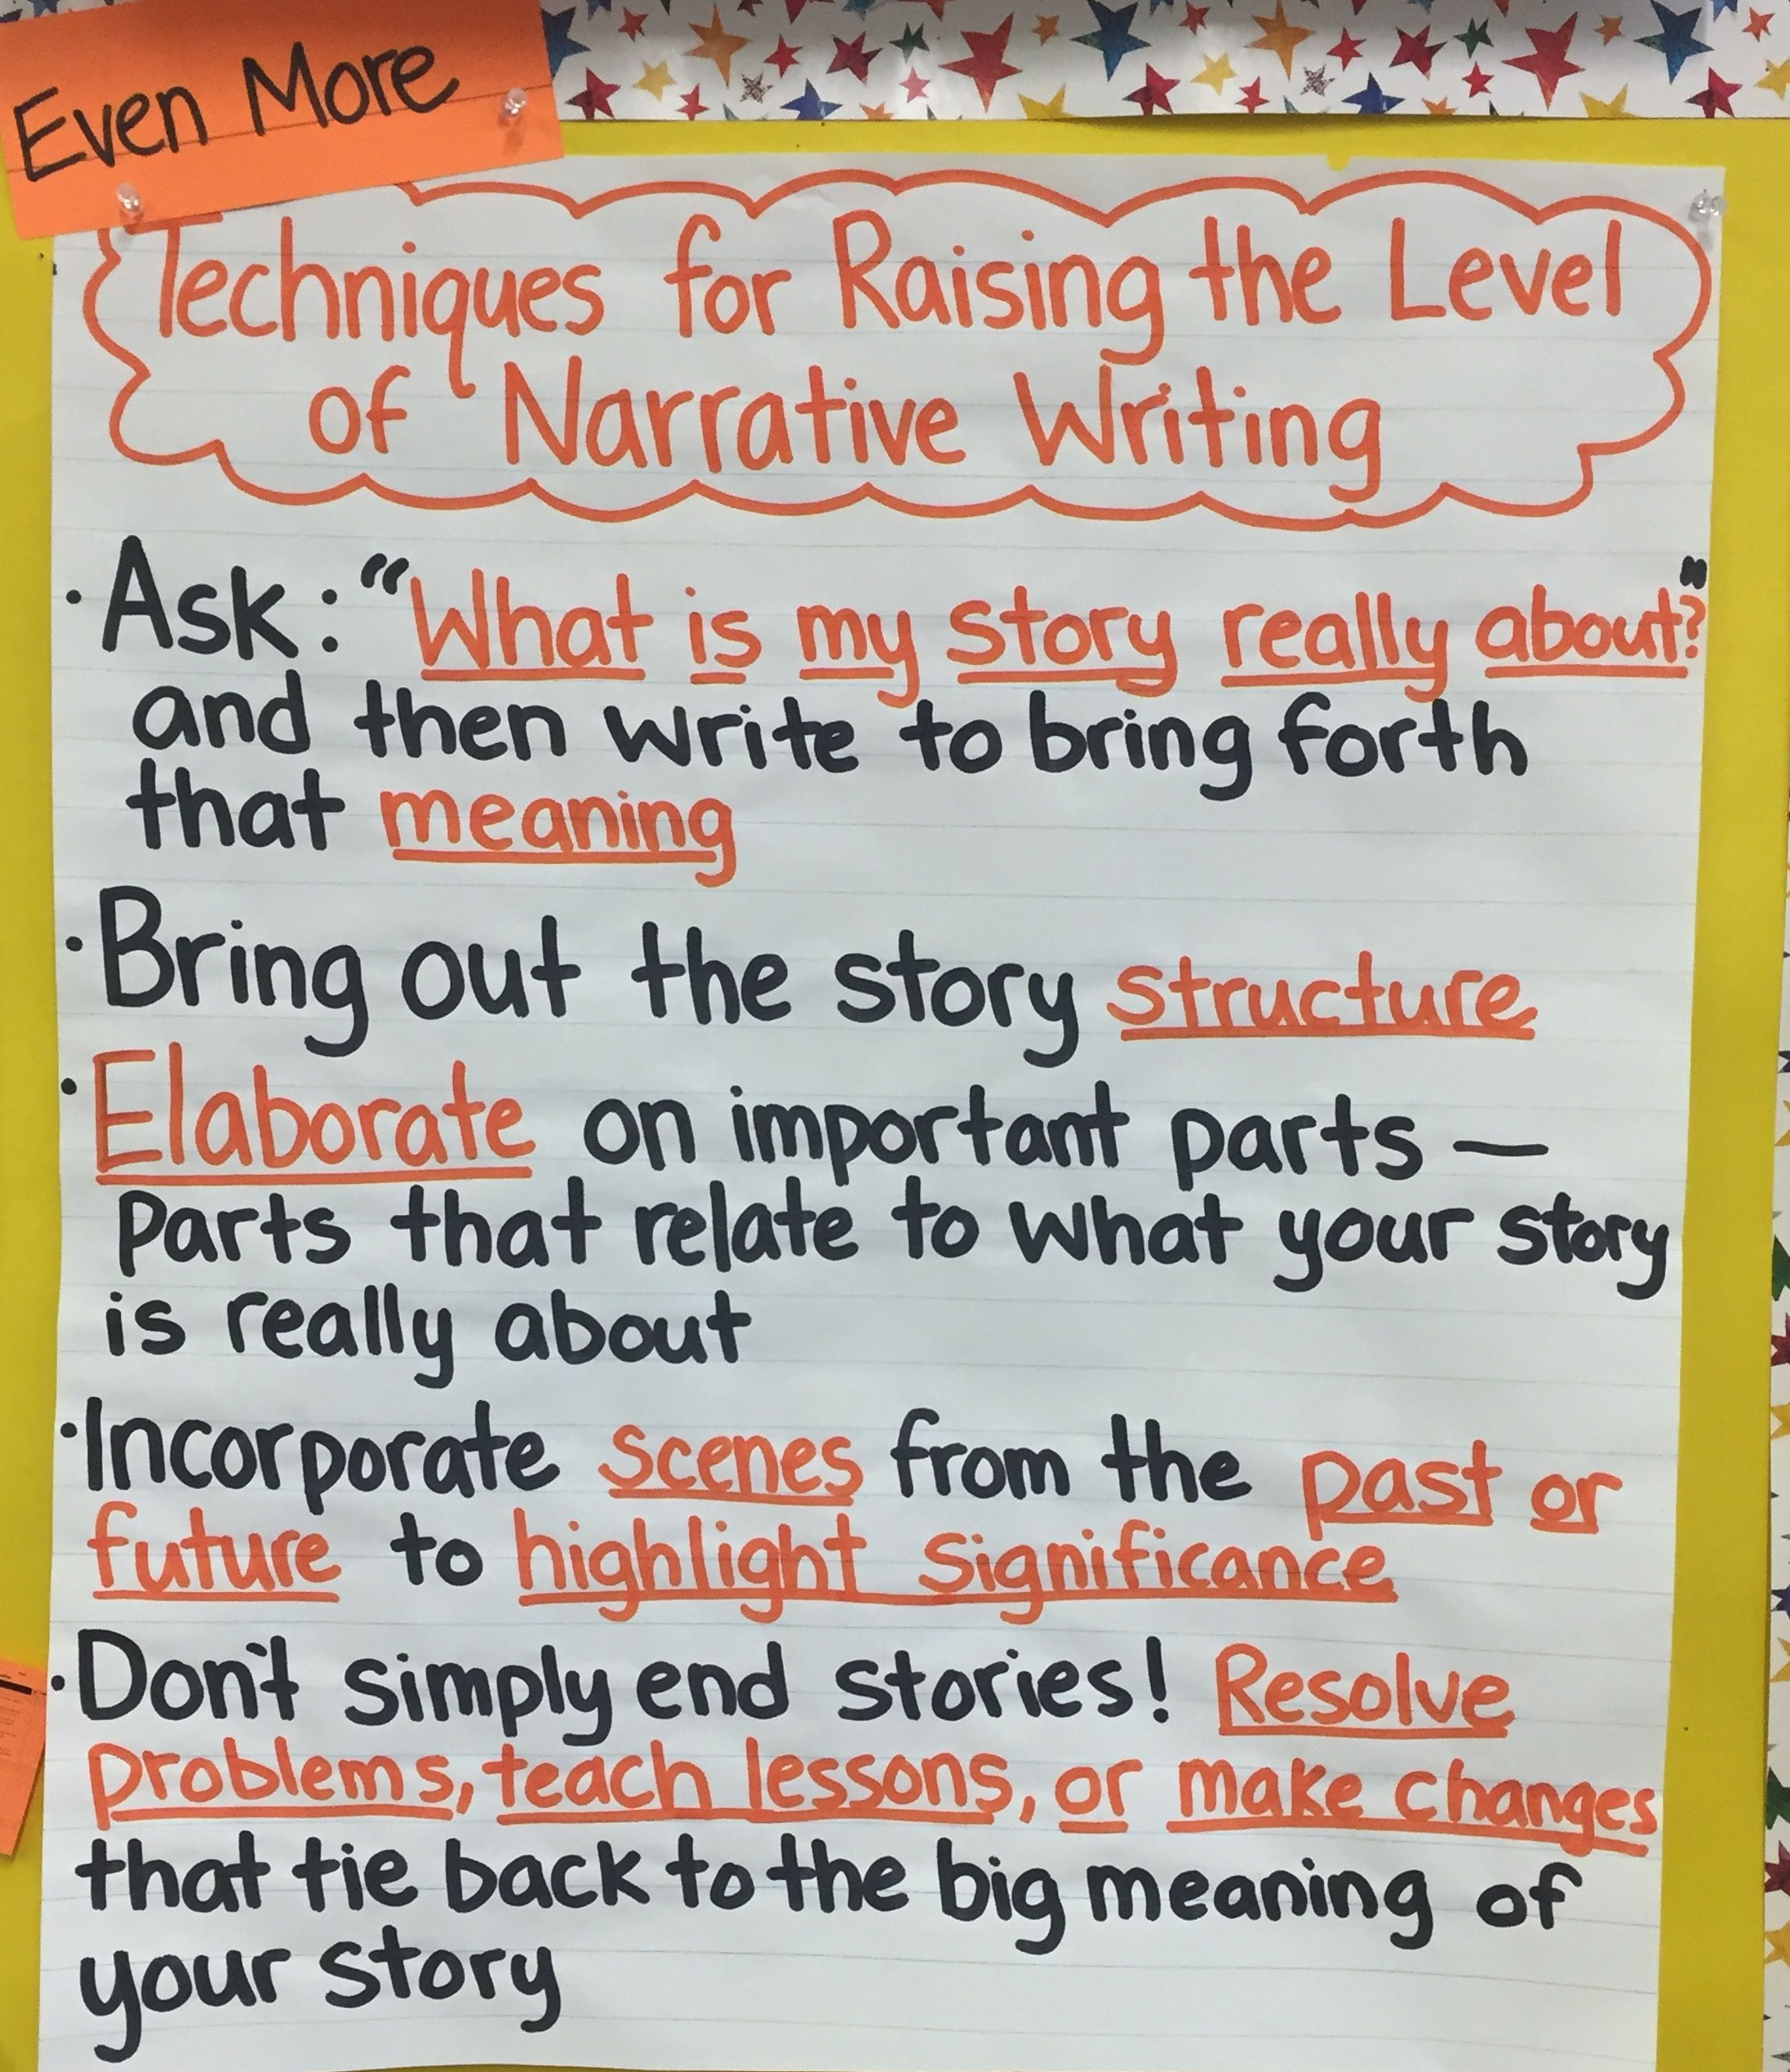 Tc Techniques For Raising The Level Of Narrative Writing Chart Narrative Writing Teaching Writing Writing Workshop How to teach narrative writing to